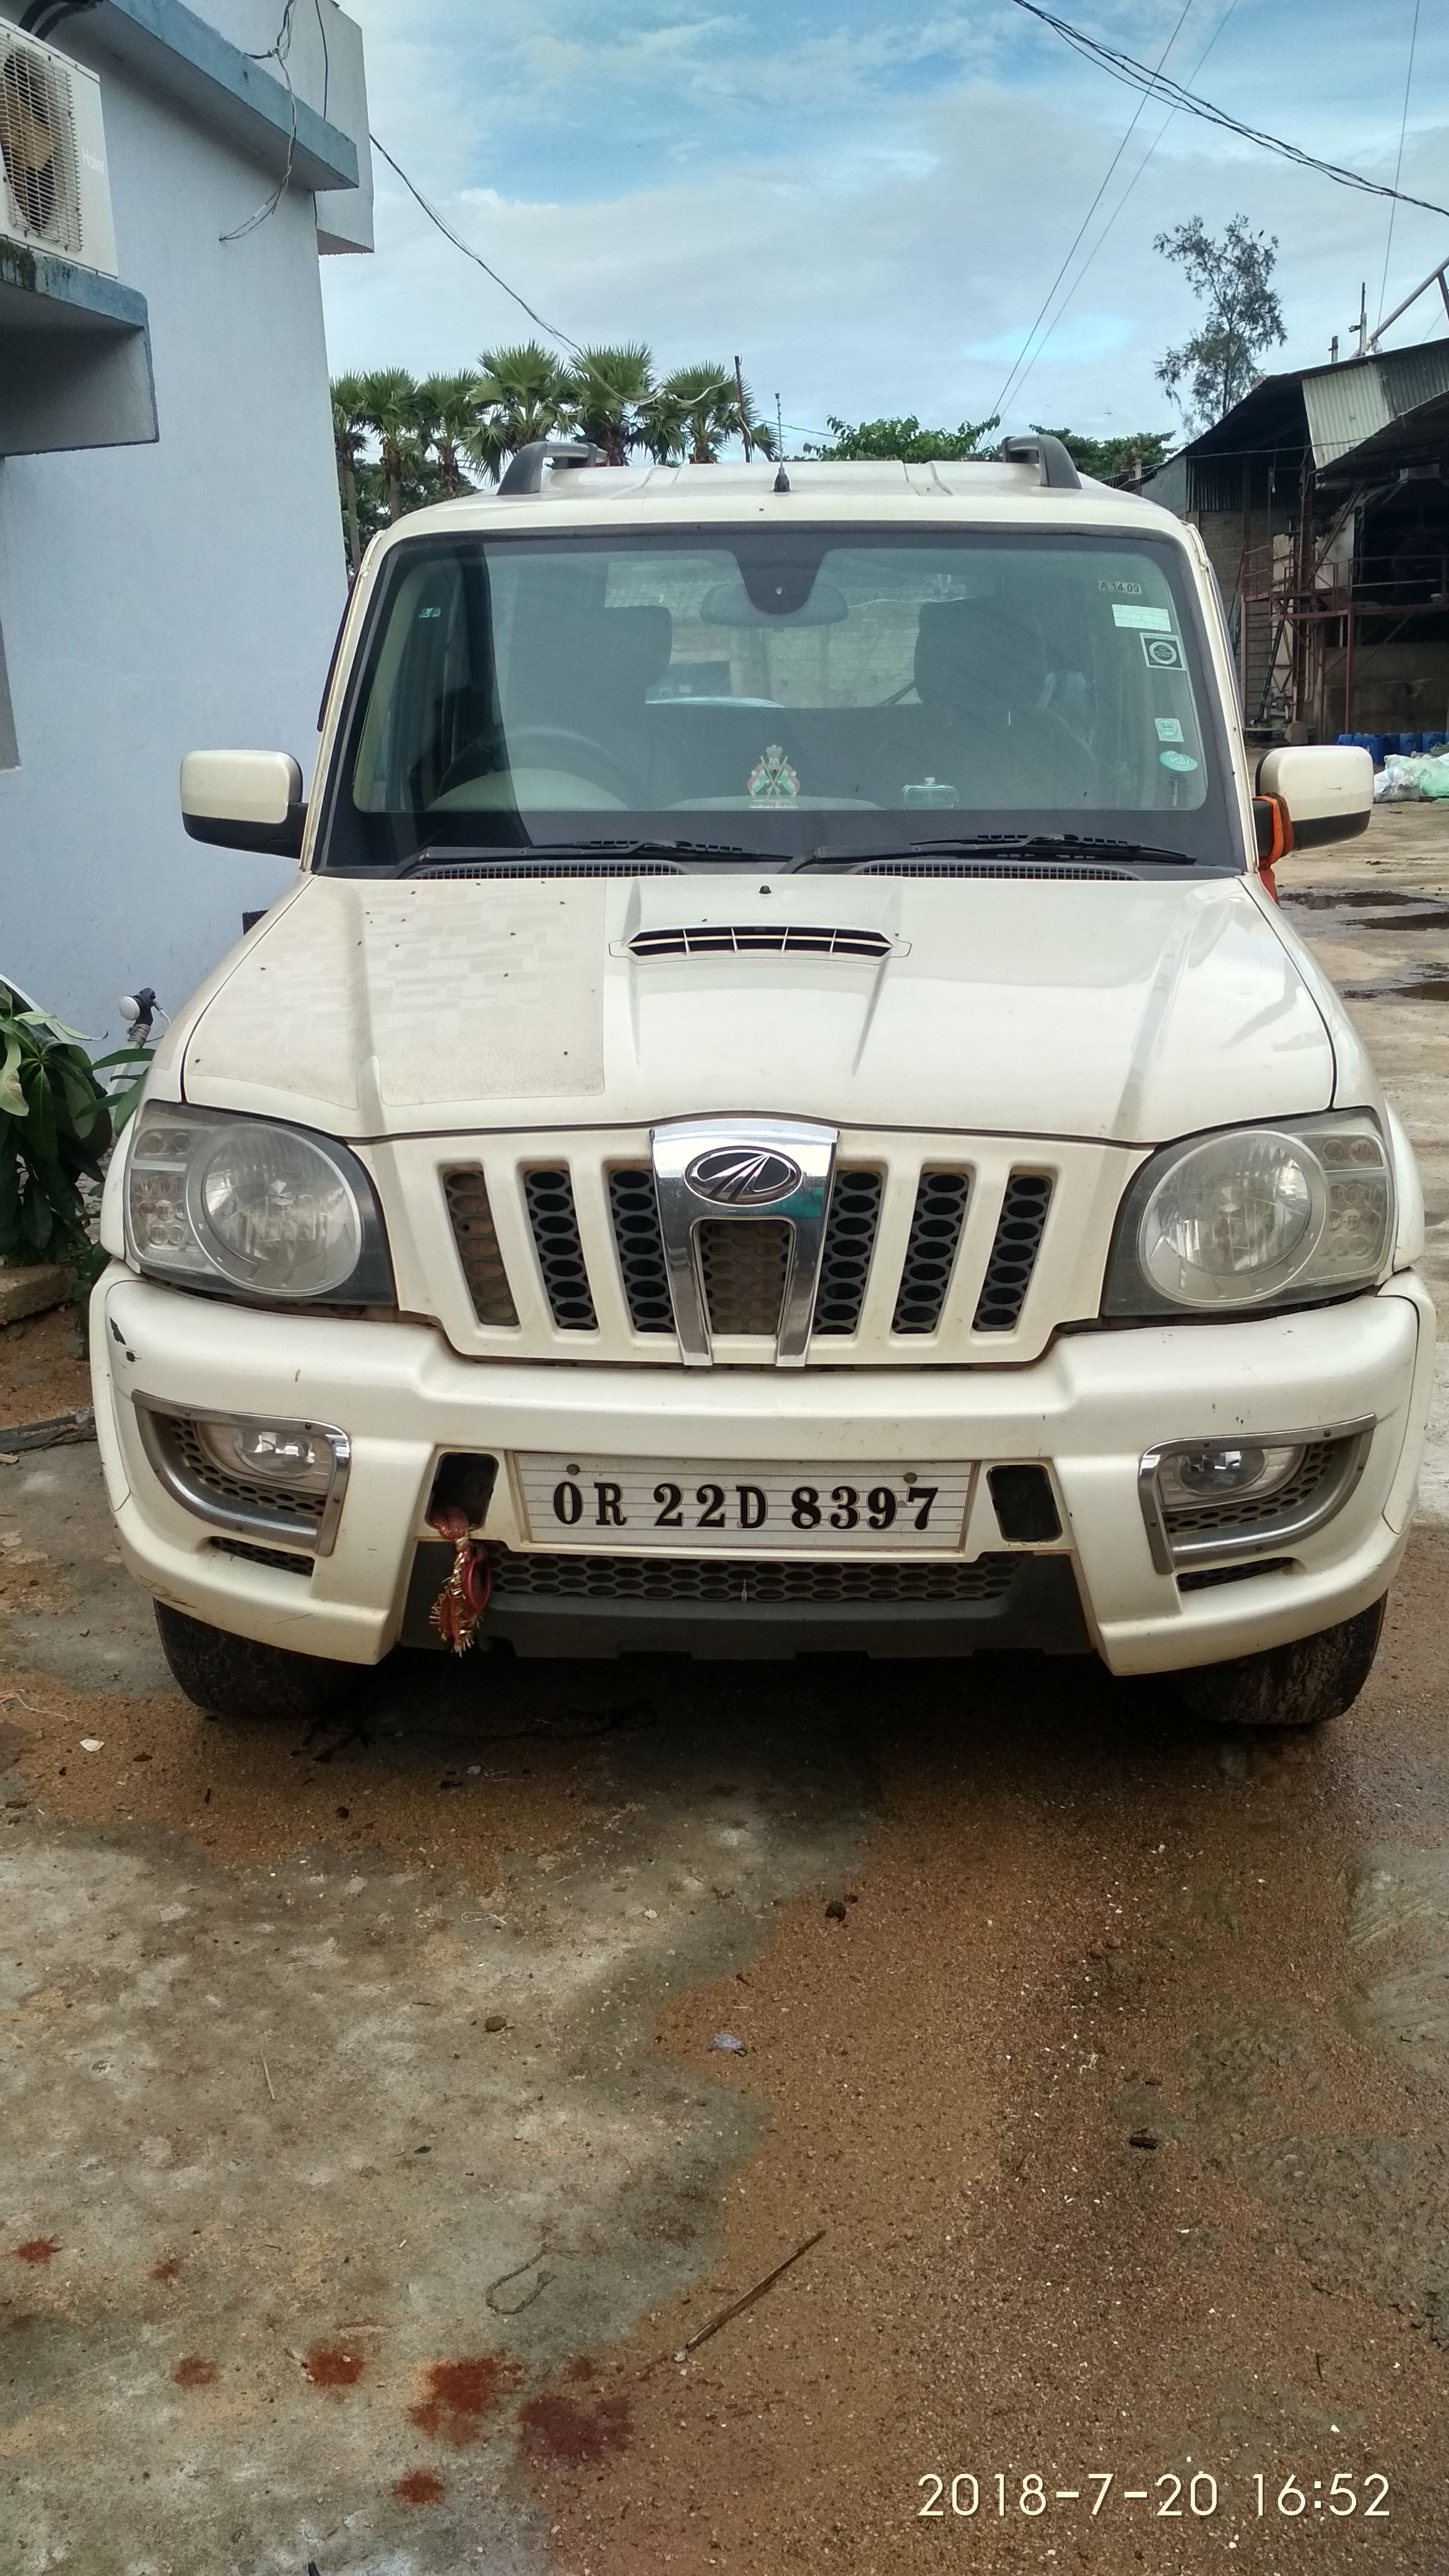 Salemycar Today Good Condition Used Scorpio For Sale In Bhubaneswar Cars For Sale Used Cars Online Used Cars